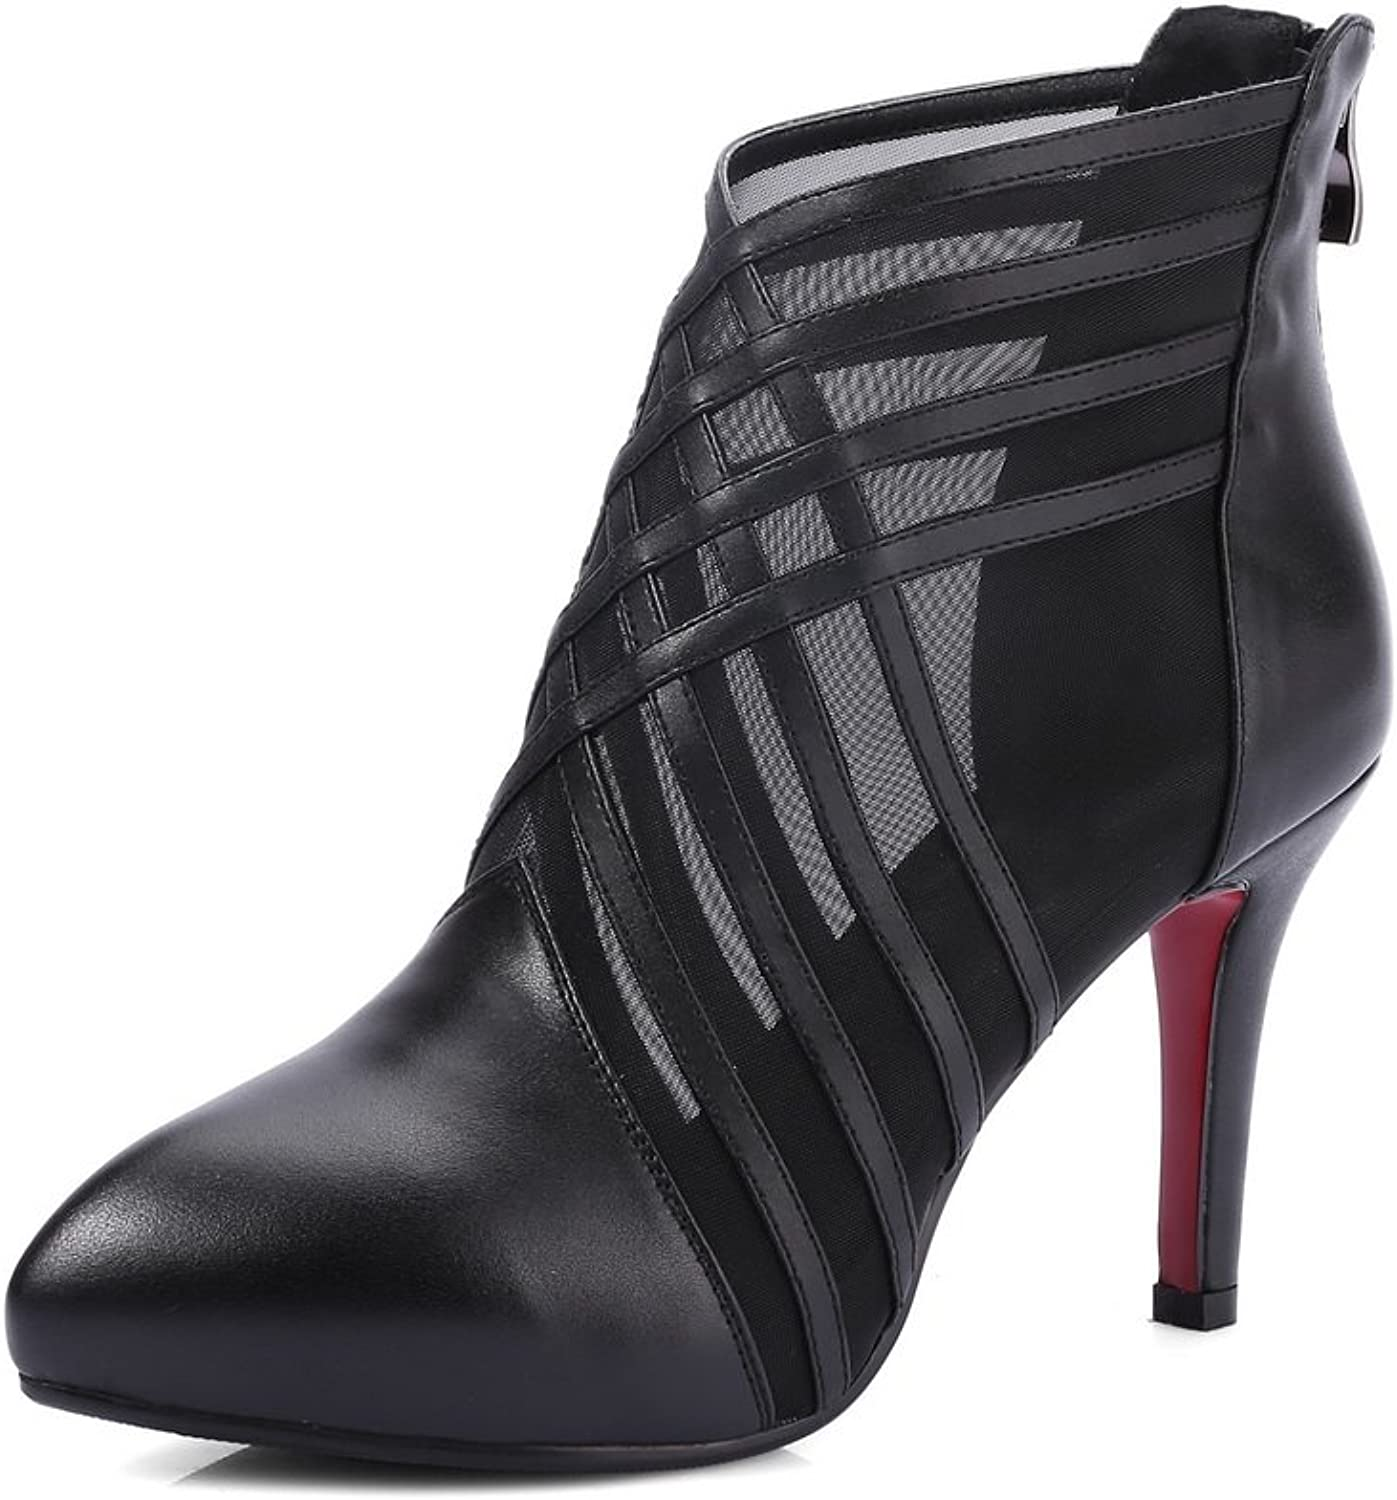 AN Womens Non-Marking Oversized Solid Urethane Pumps shoes DIU00865